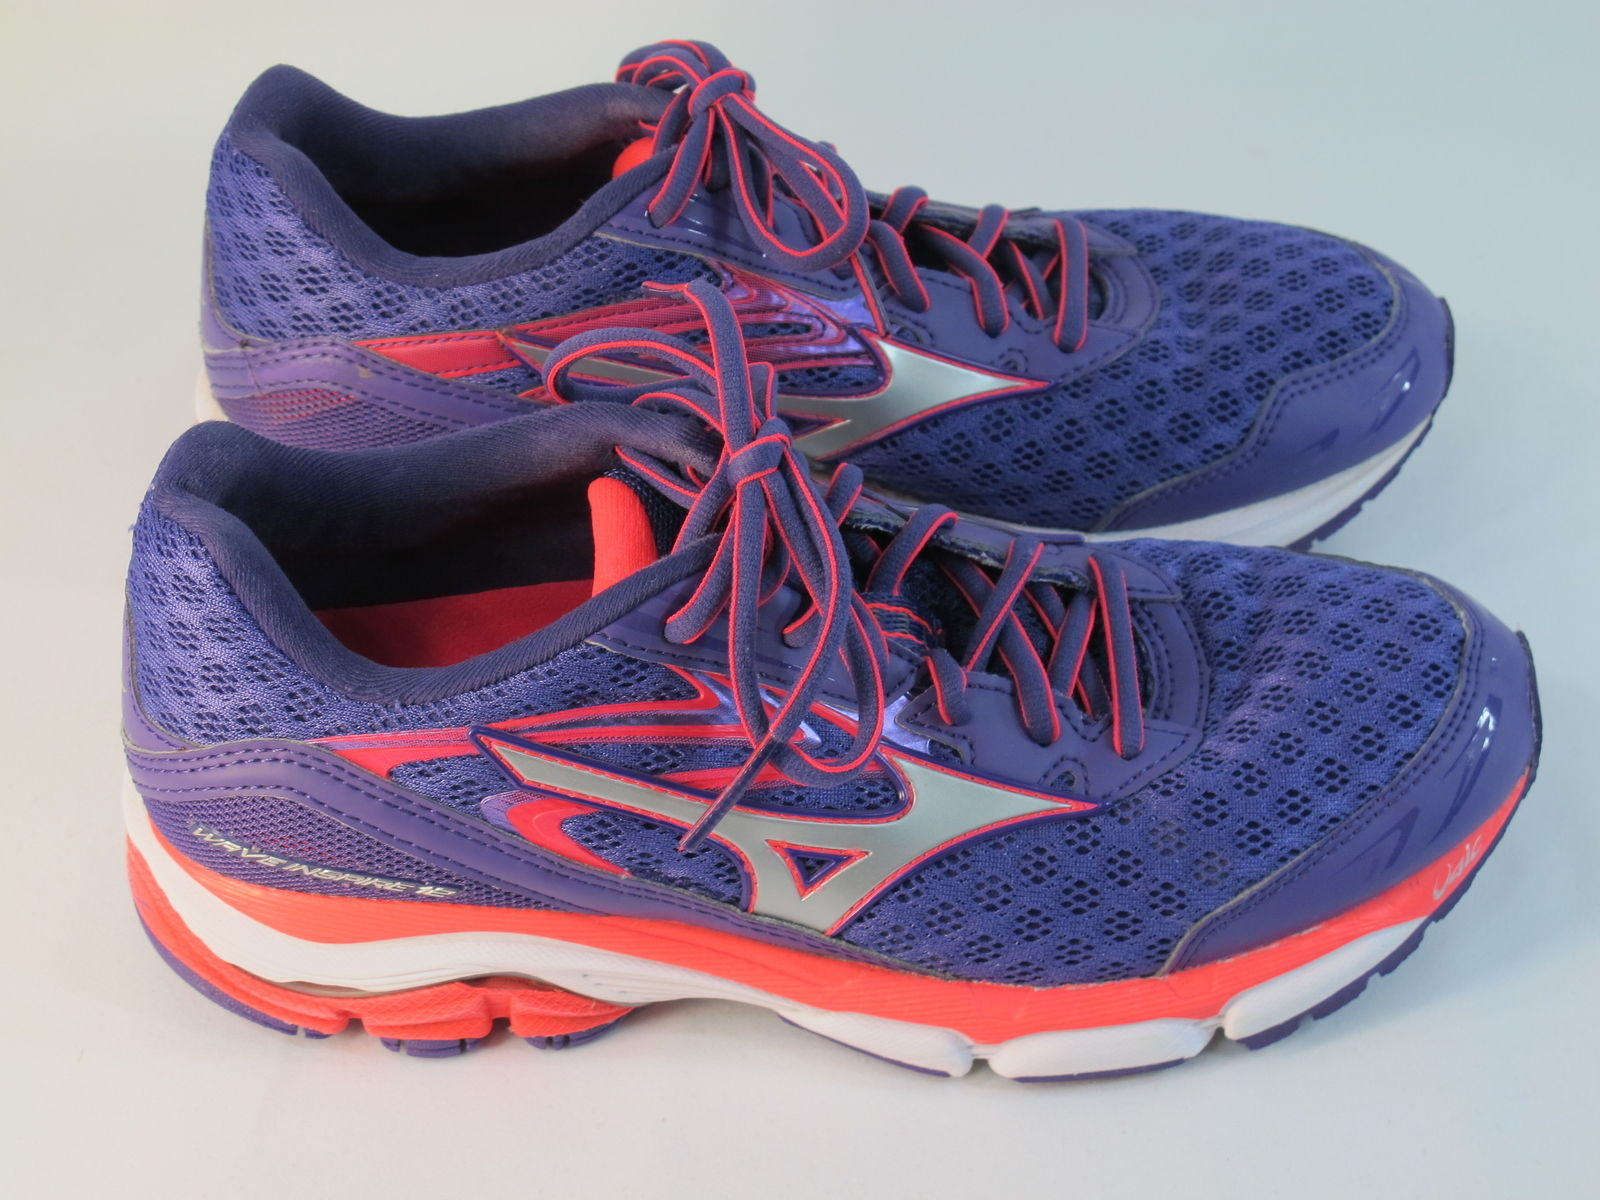 mens mizuno running shoes size 9.5 equivalent hk shoes